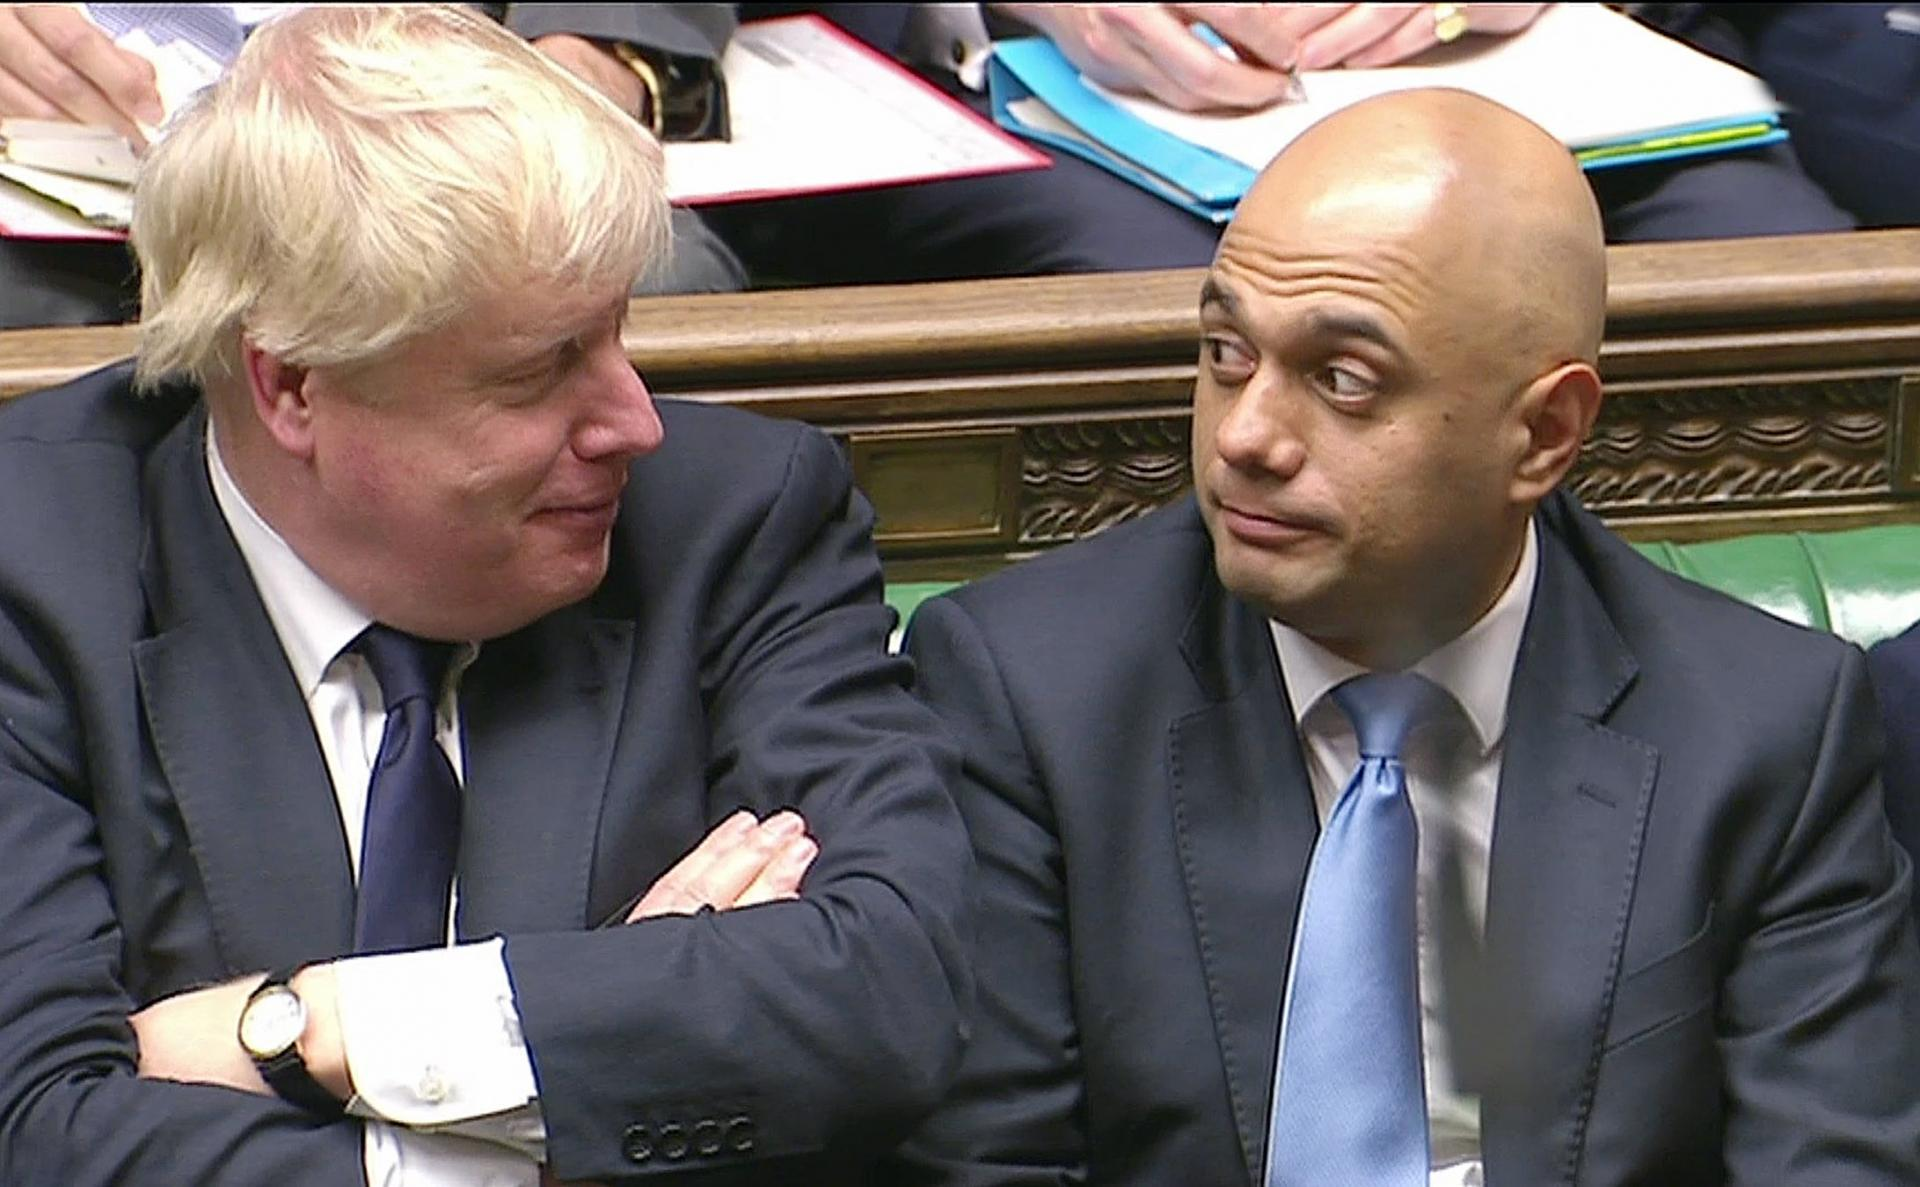 Brexit deal will face big trouble, but is the right way forward, says Javid